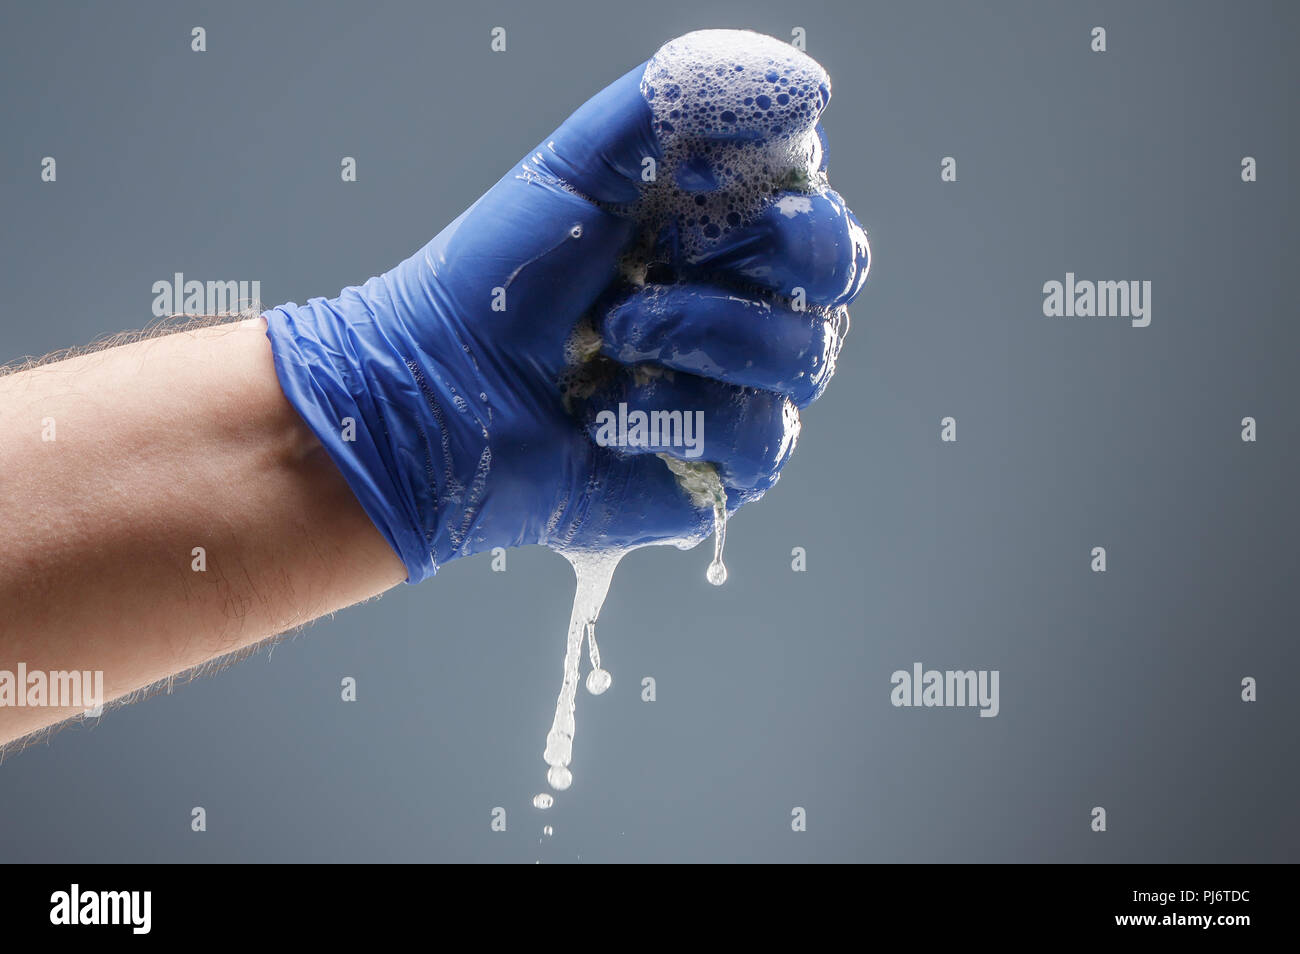 Male hand in blue glove with dripping foam - Stock Image